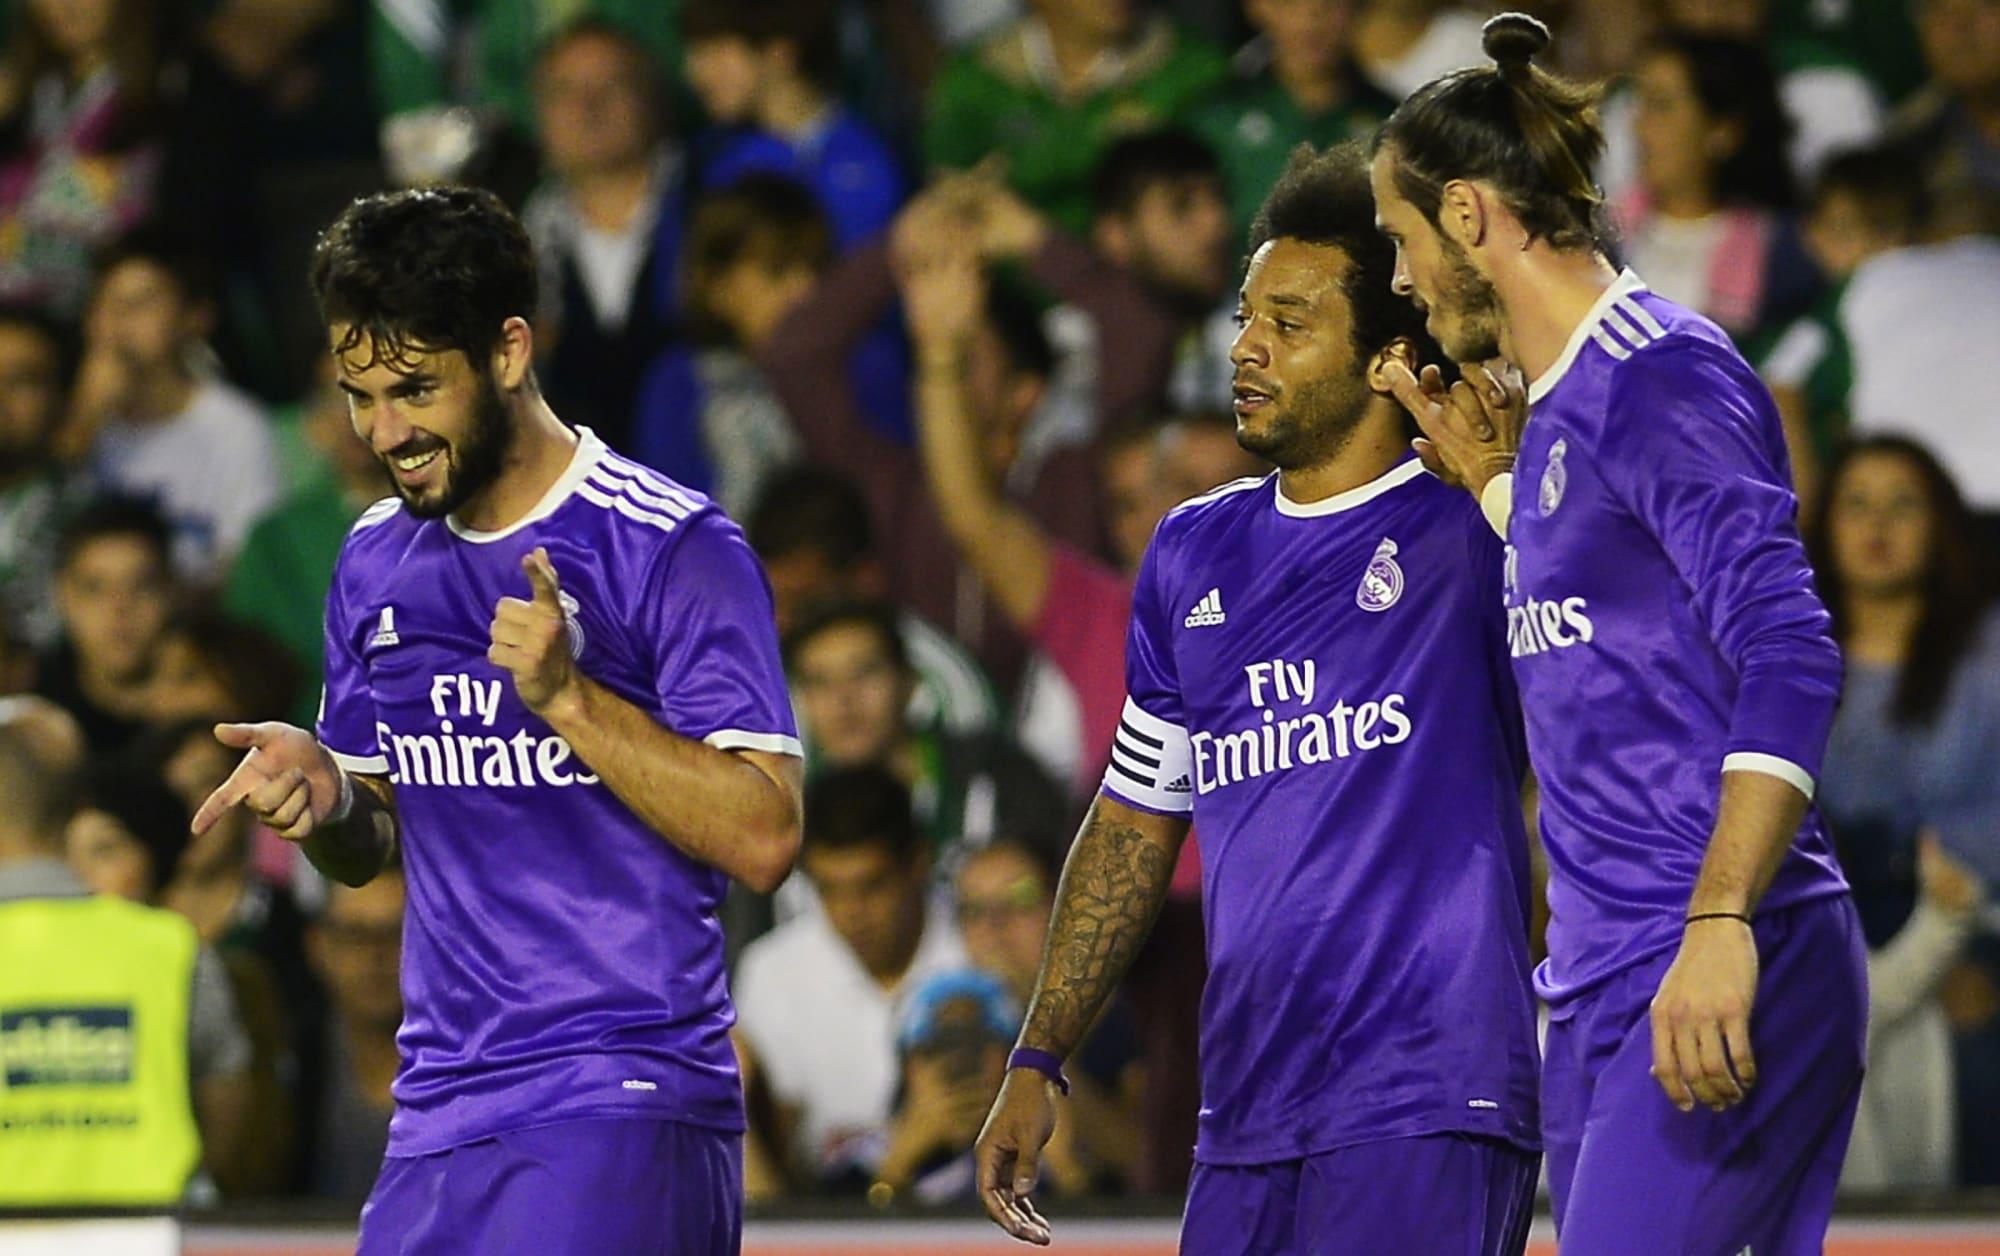 Real Madrid: Five players who are in their final season with the club